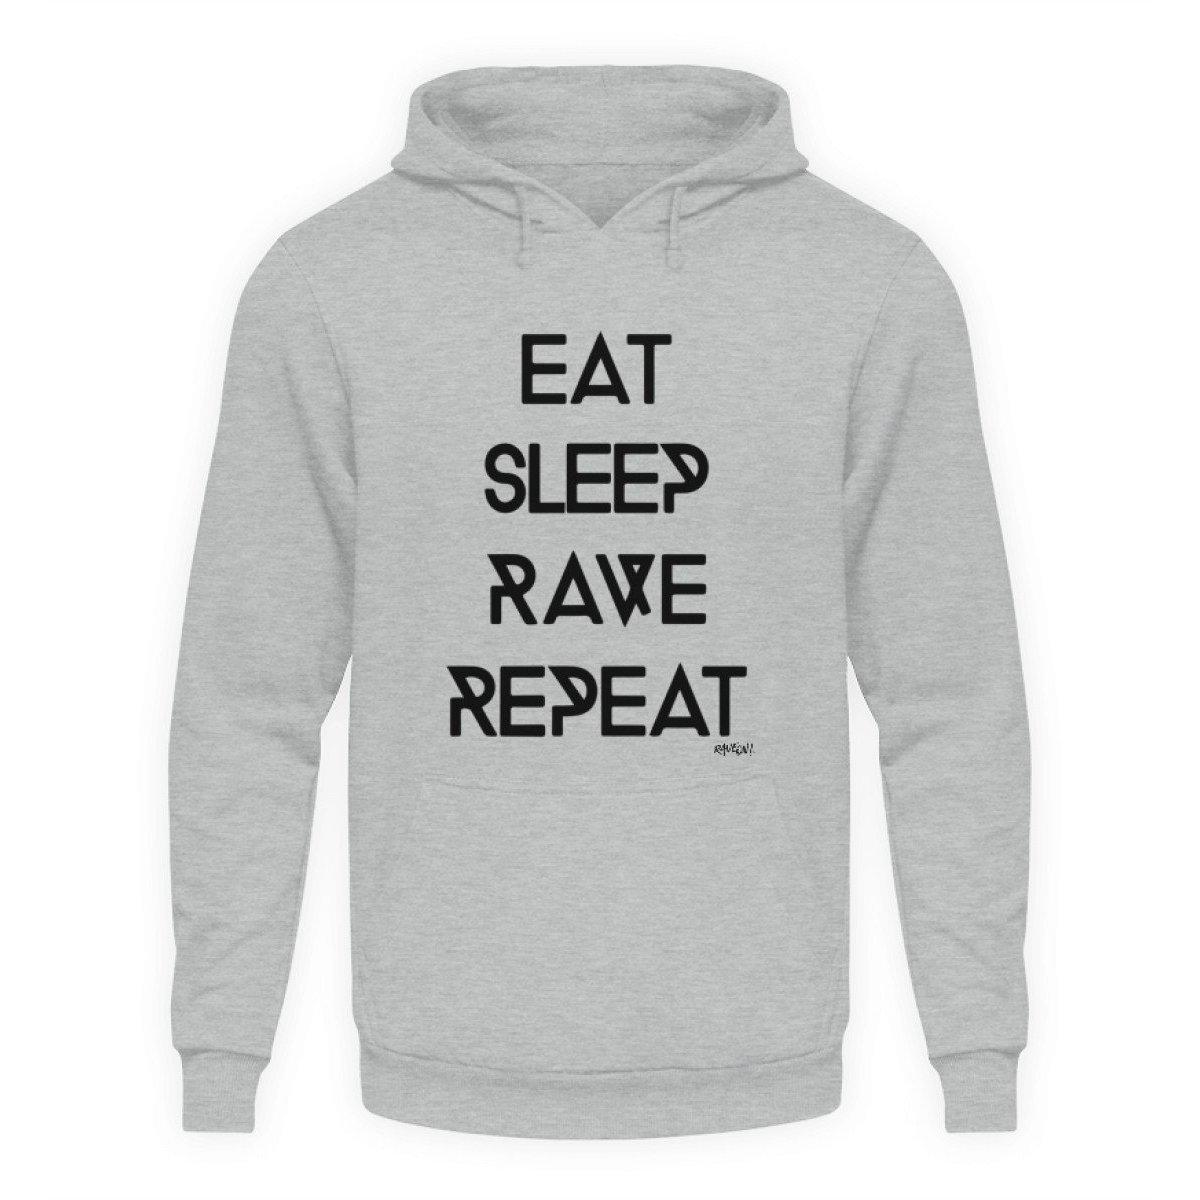 Eat Sleep Rave Repeat - Rave On!® - Unisex Kapuzenpullover Hoodie-Unisex Hoodie-Heather Sport Grey-L-Rave-On! I www.rave-on.shop I Deine Rave & Techno Szene Shop I brand, Design - Eat Sleep Rave Repeat Rave On!®, eat sleep rave repeat, rave repeat, Techno shirt - Sexy Festival Streetwear , Clubwear & Raver Style